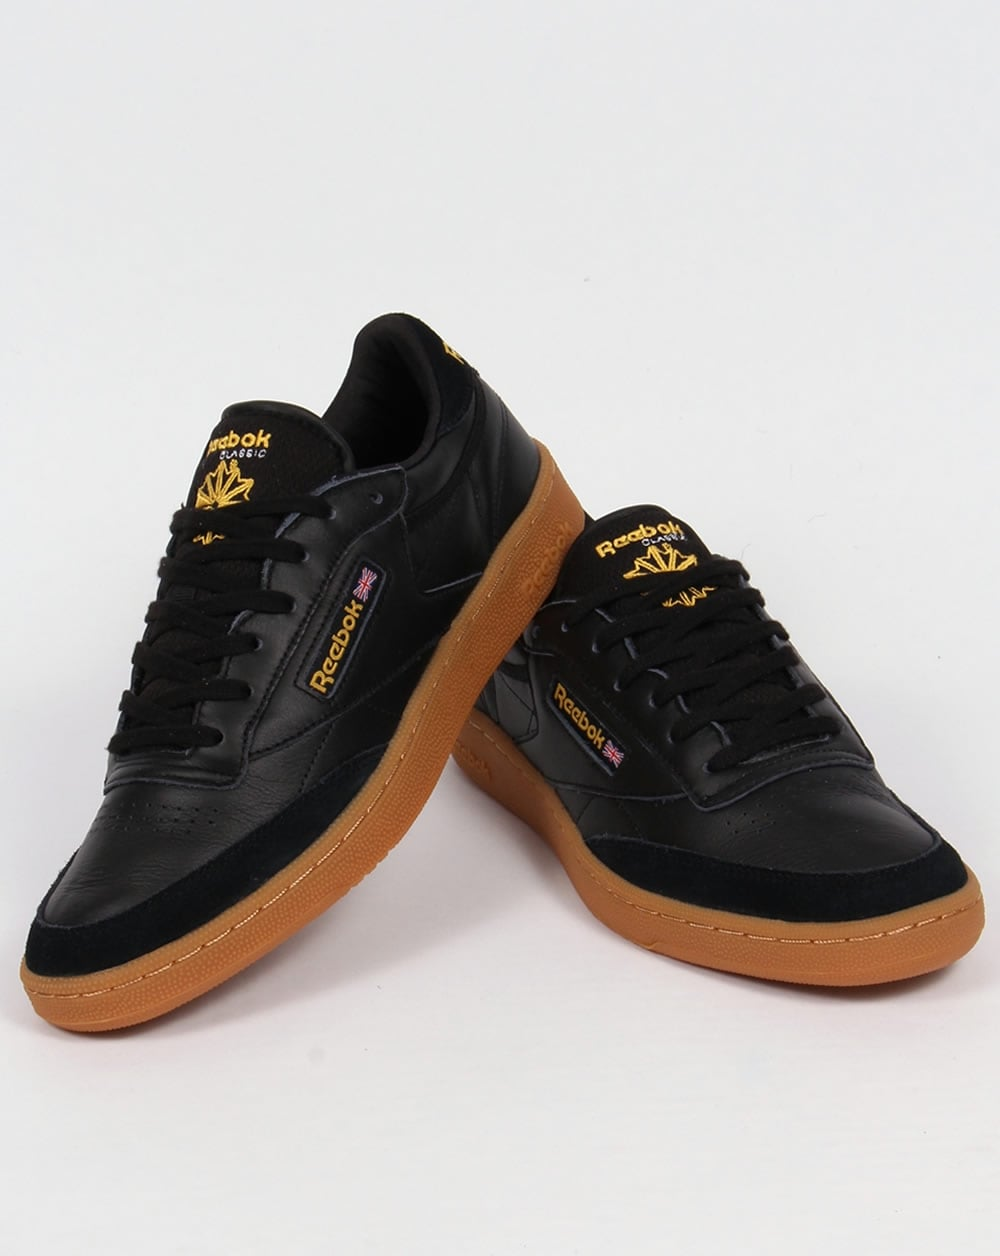 reebok club c 85 trainers black yellow shoe gum leather mens classic. Black Bedroom Furniture Sets. Home Design Ideas